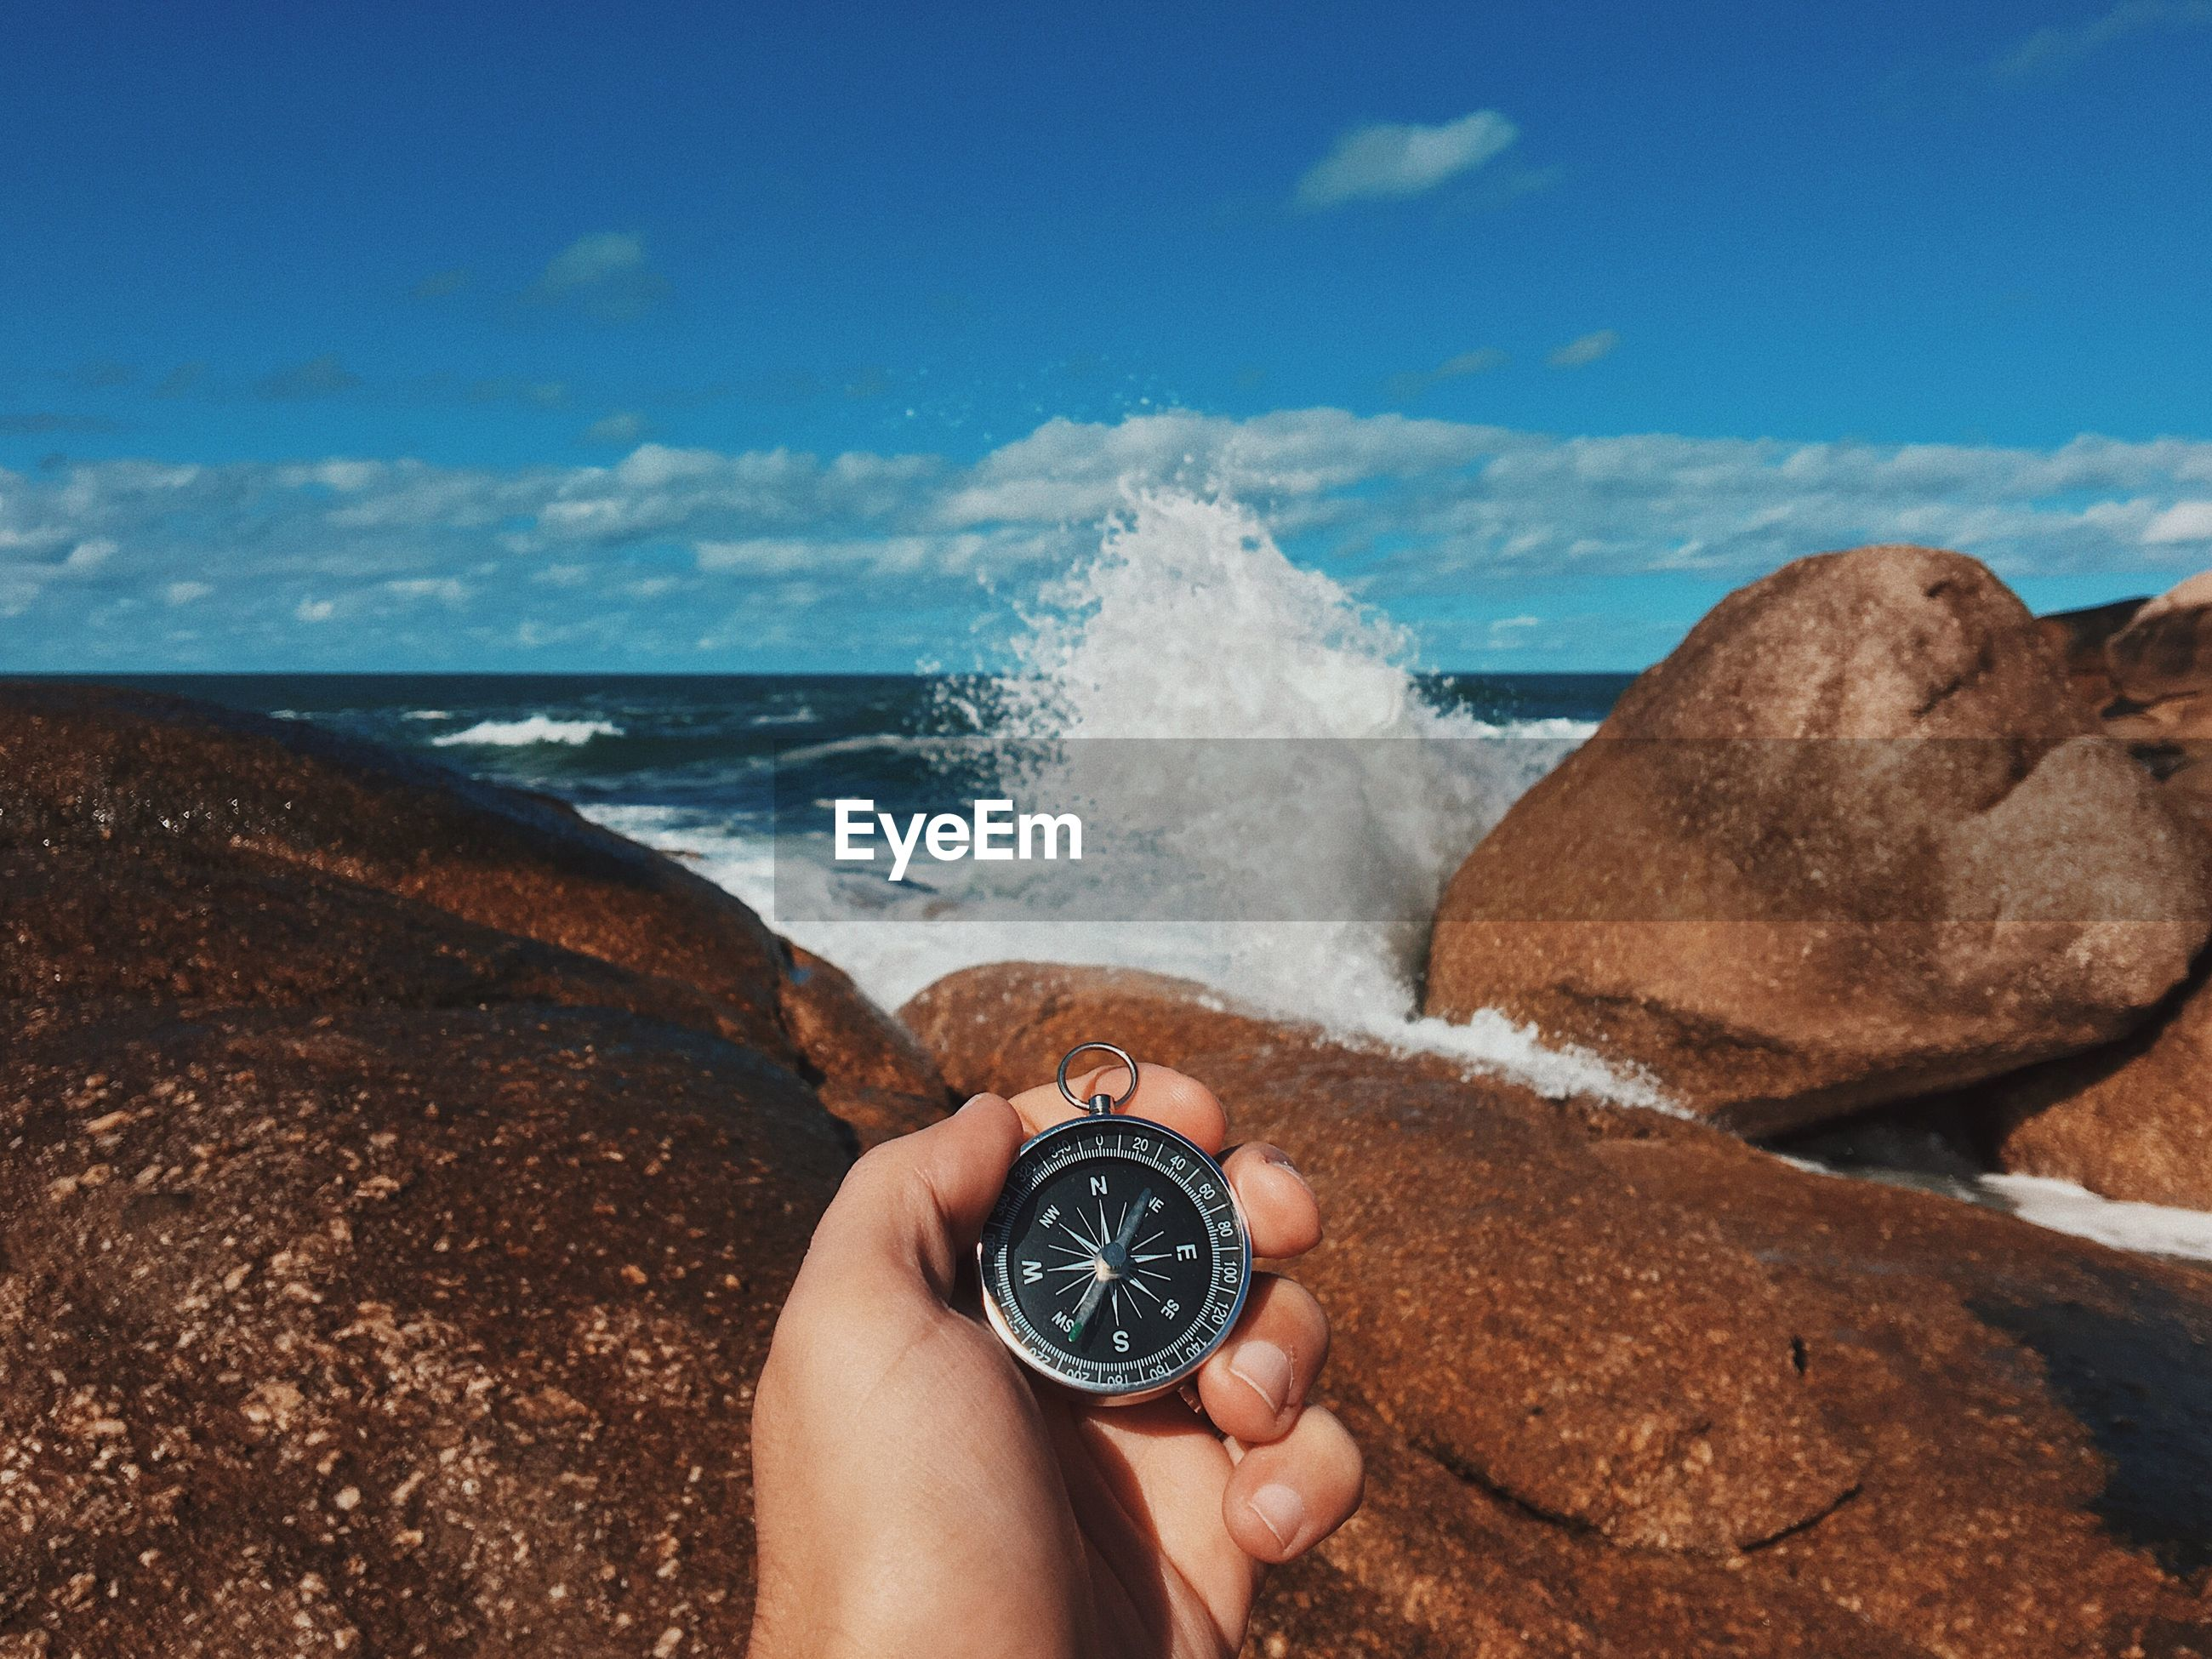 Cropped image of person holding navigational compass against rocky shore